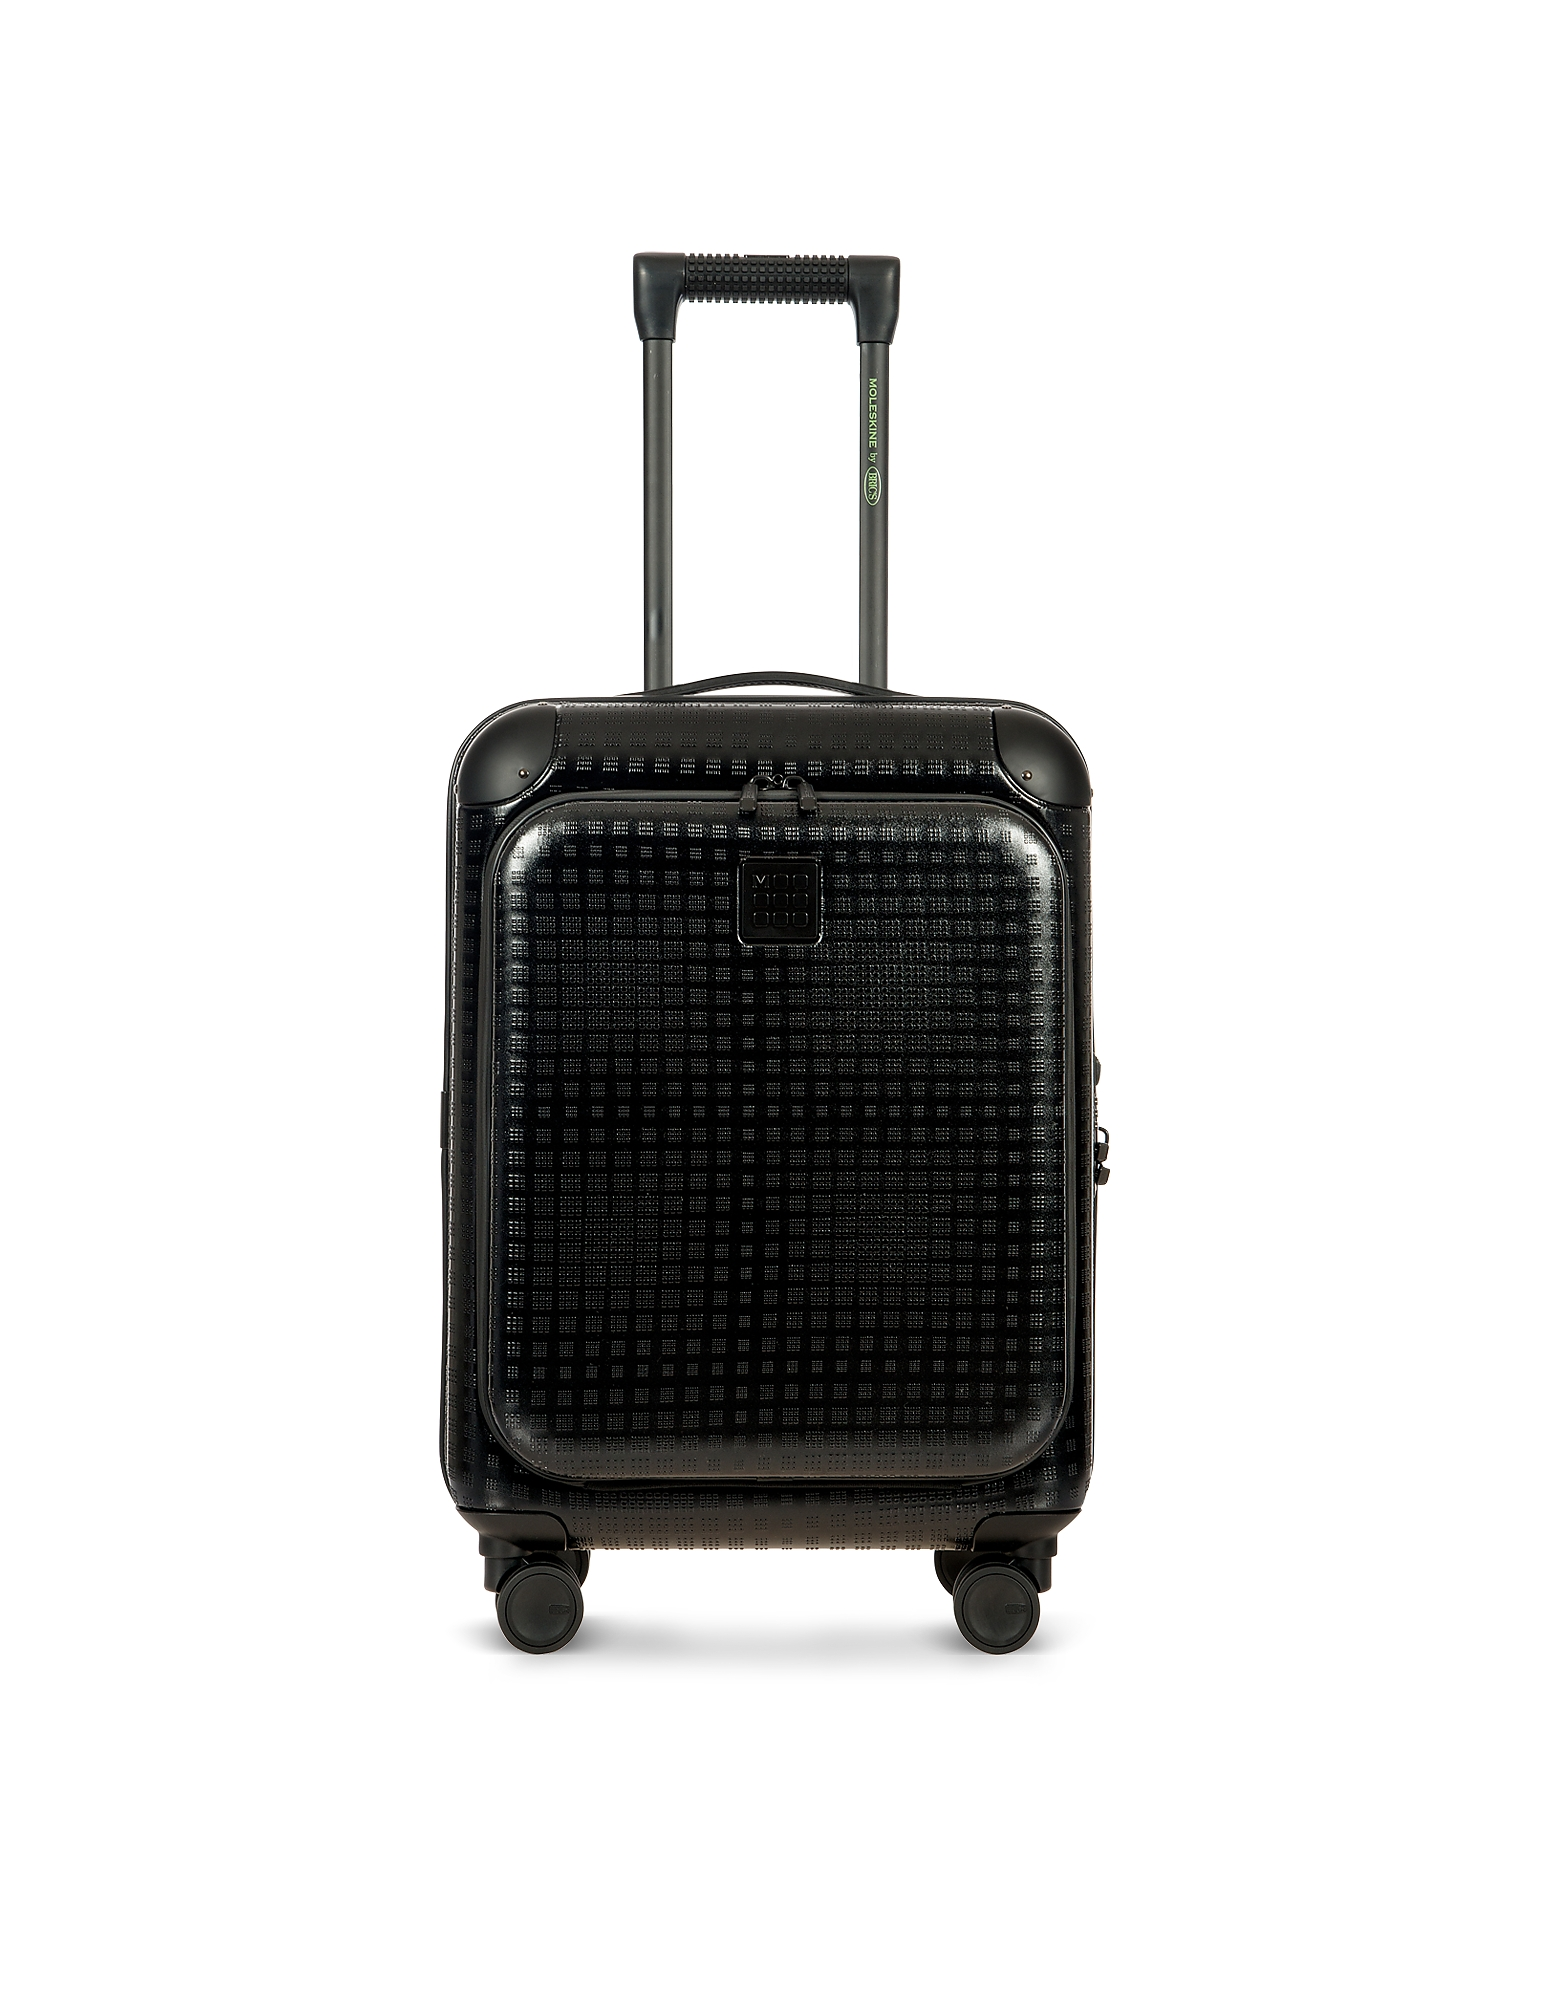 Bric's Travel Bags, Black 21 Business Hard Case Cabin